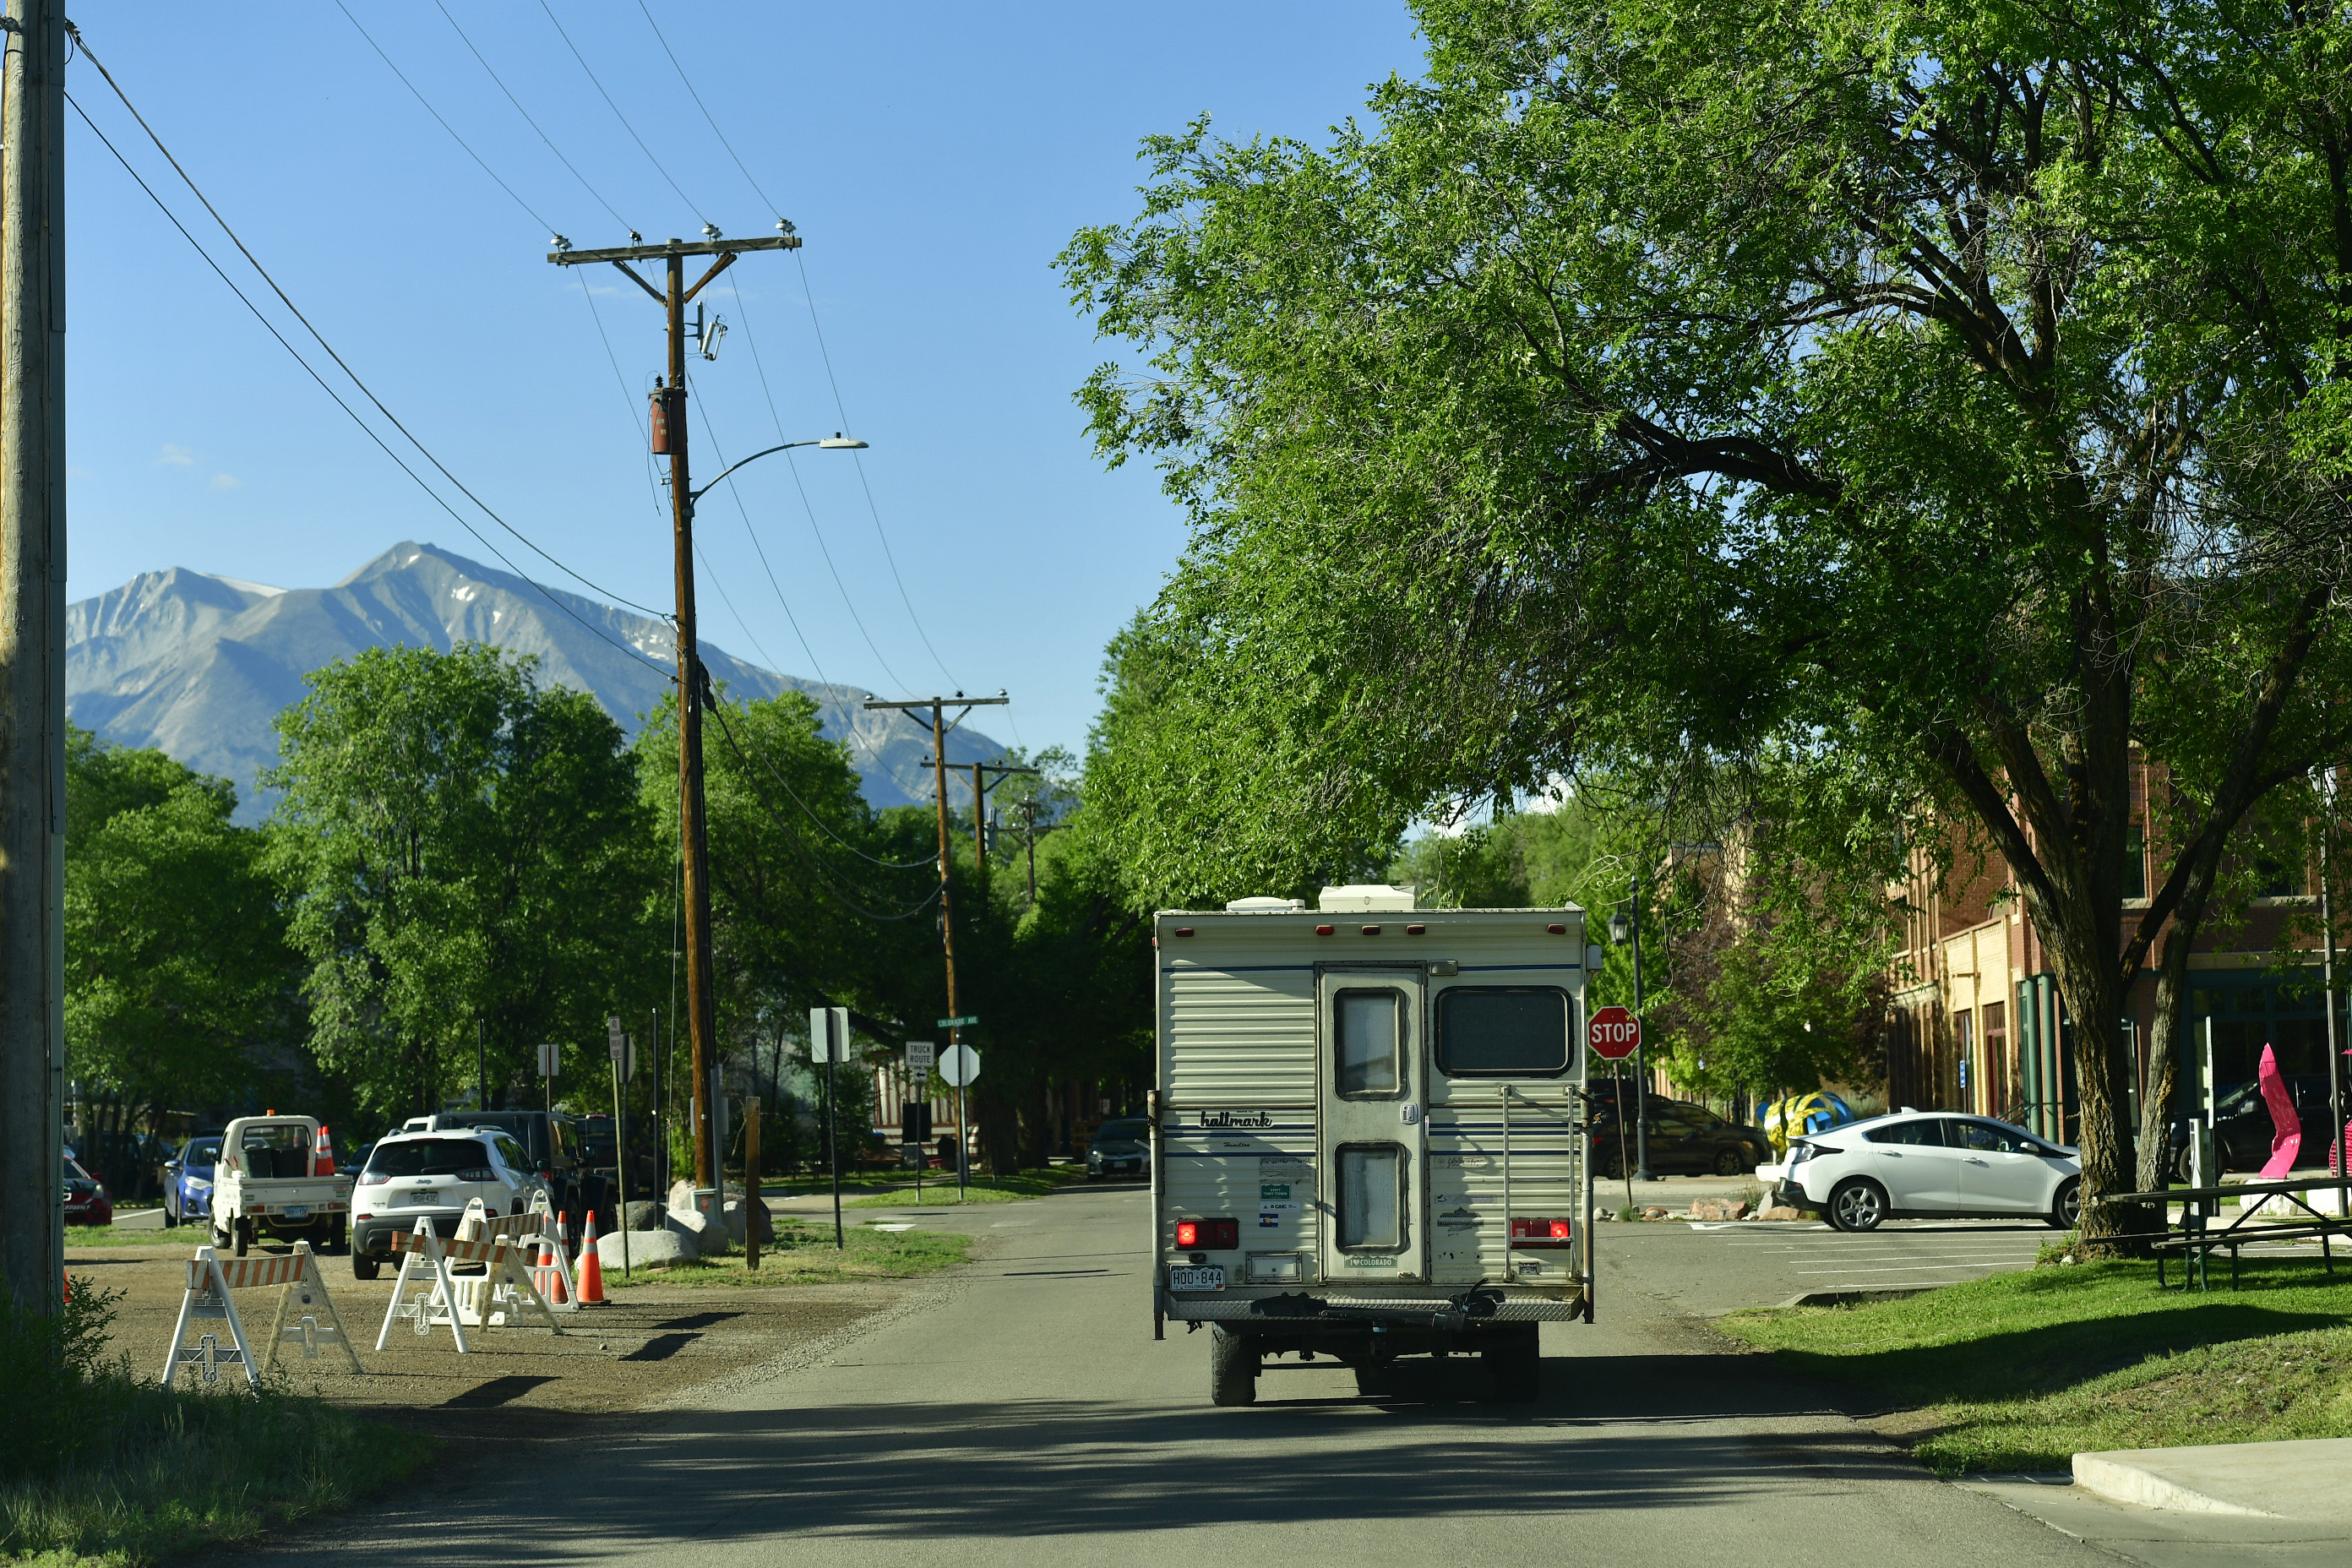 With Mount Sopris in the background ...